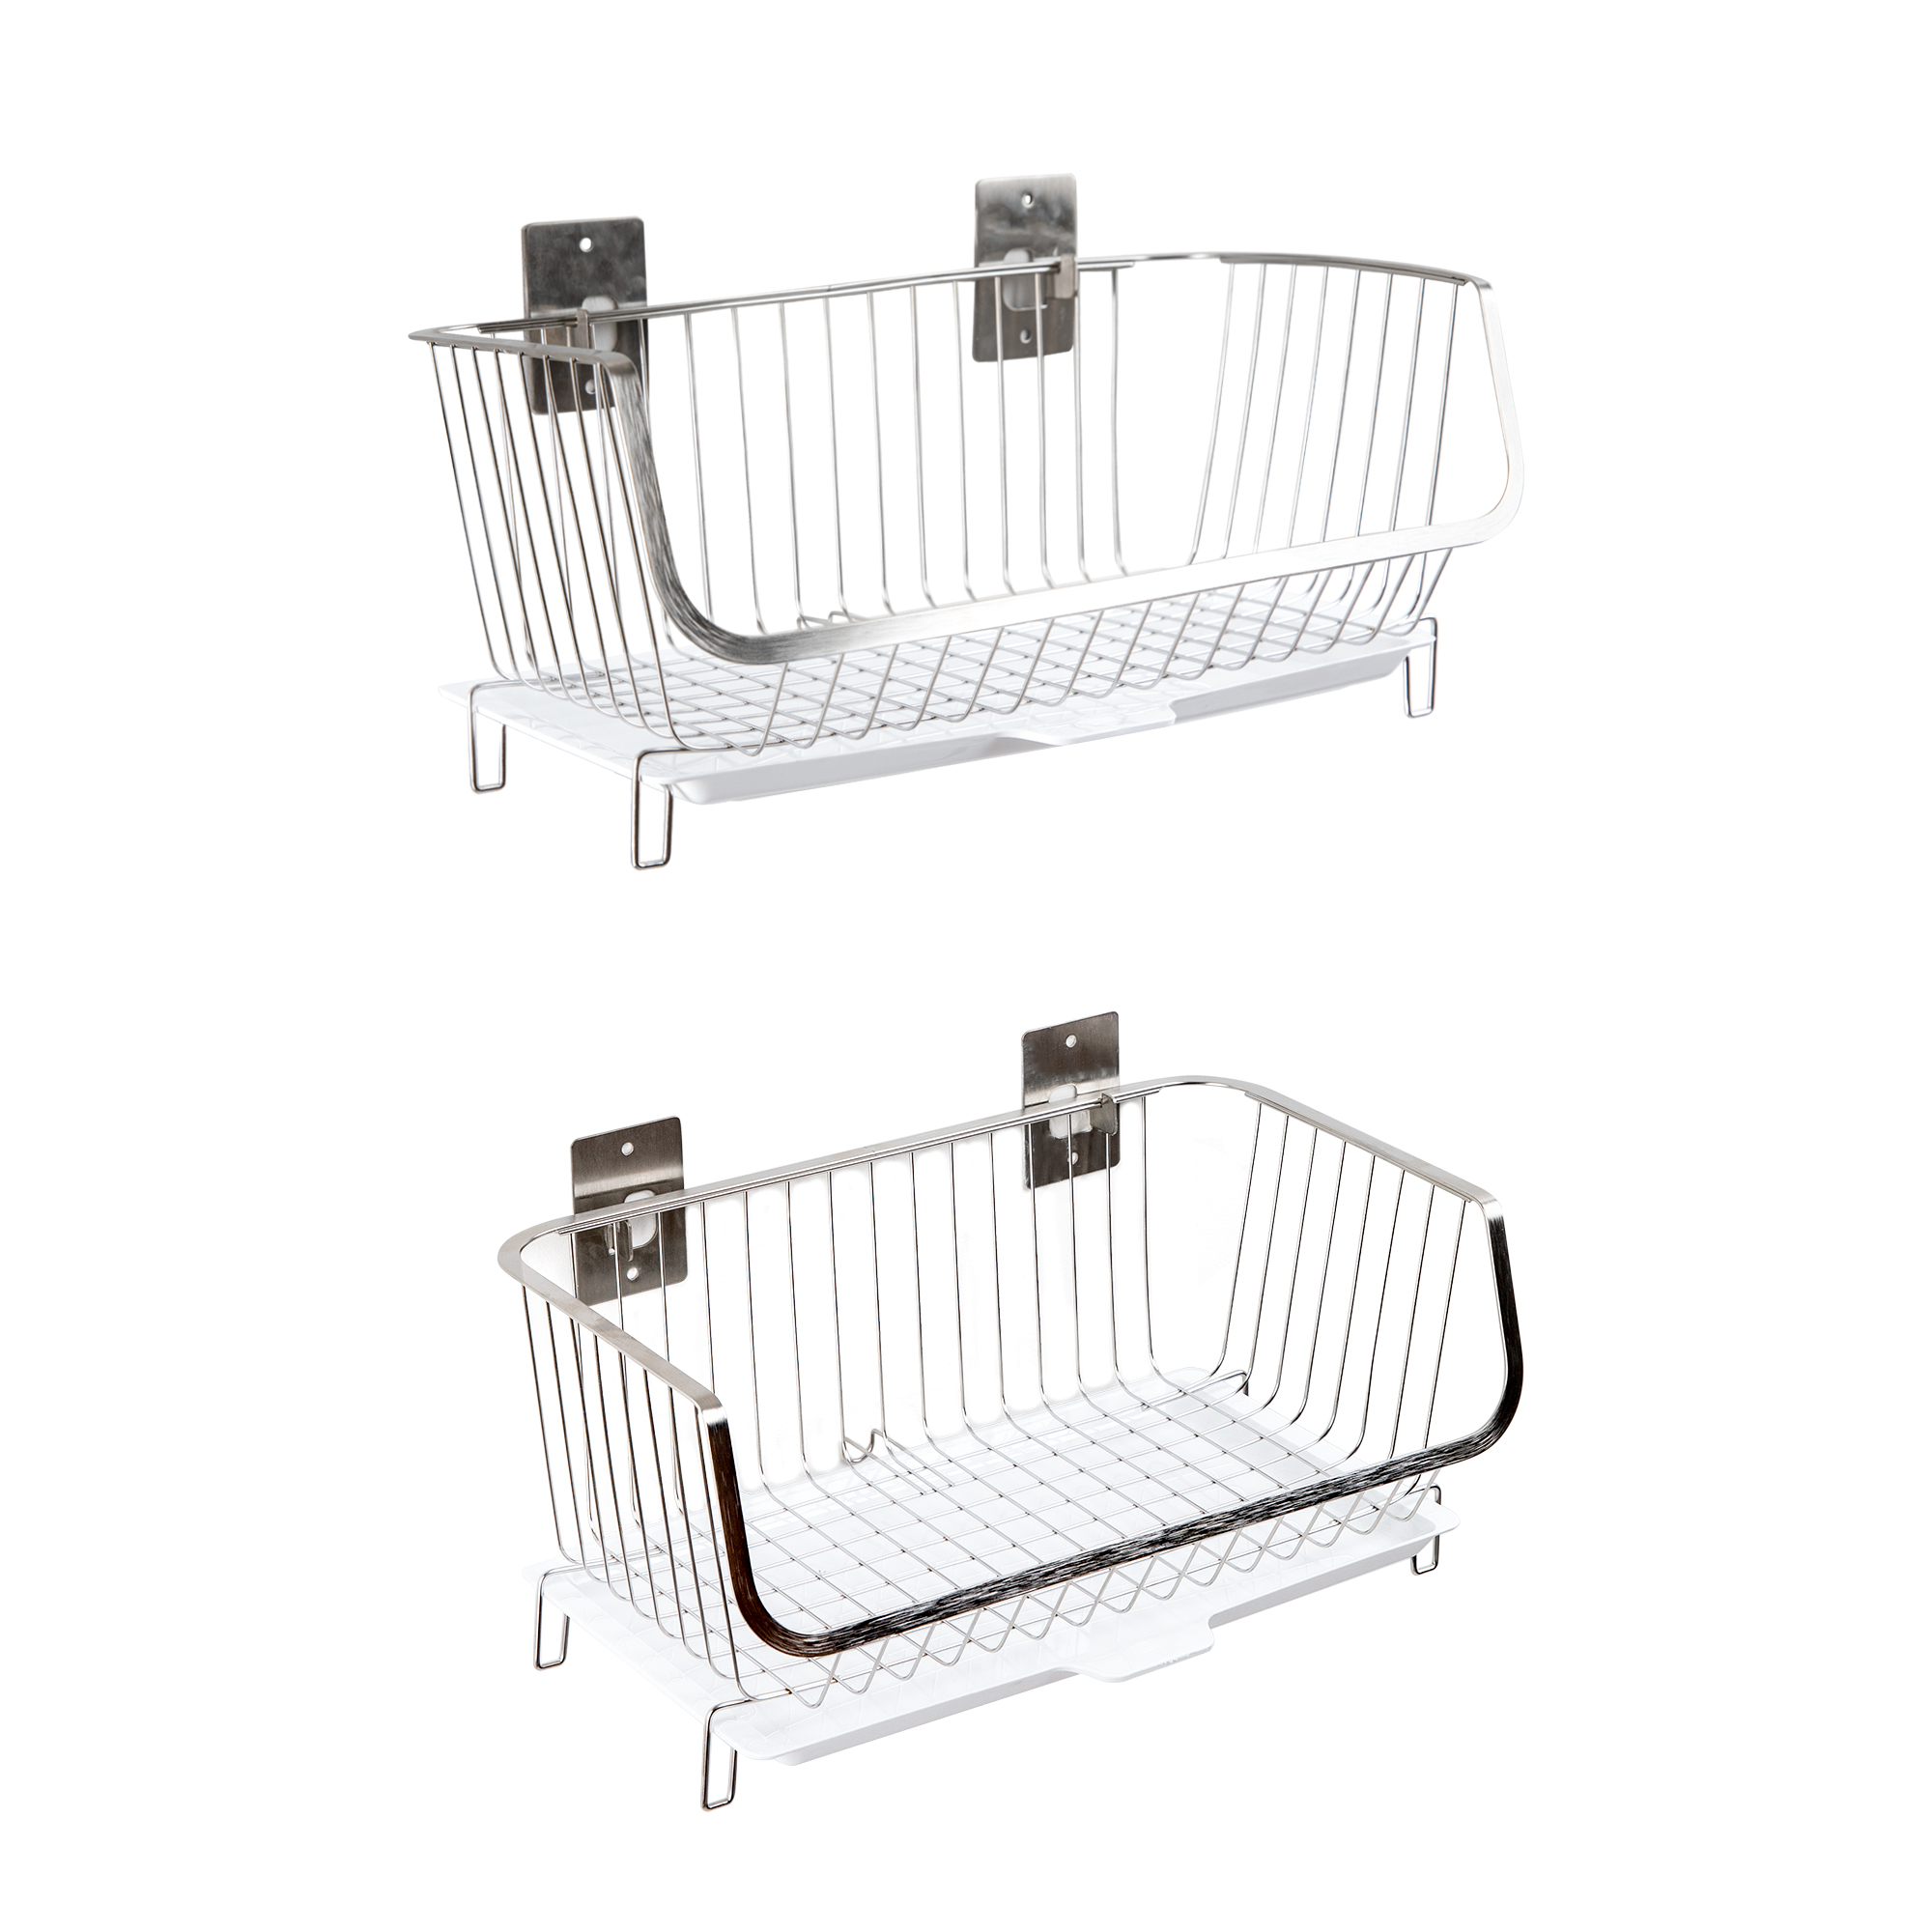 2PCS Free Screws Multifunctional hanging Wall Mounted fruit vegetable kitchen metal <strong>storage</strong> stainless steel wire <strong>basket</strong>